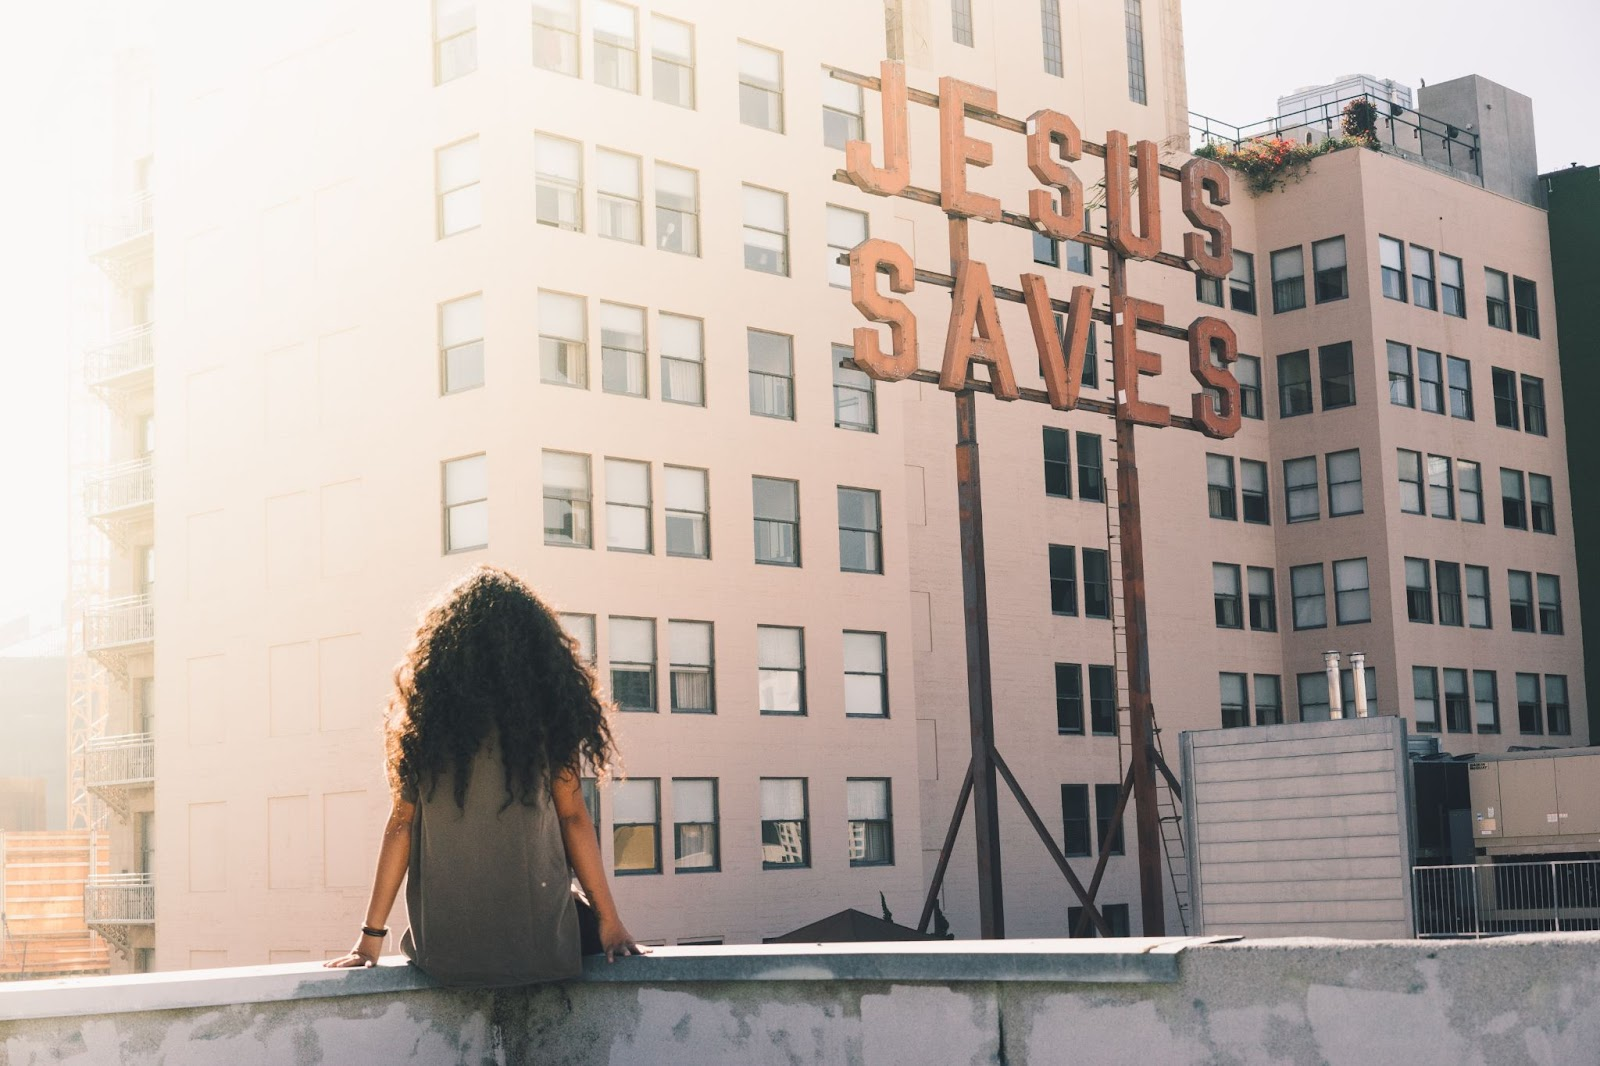 Girl sitting on a wall under a sign that says 'Jesus Saves'